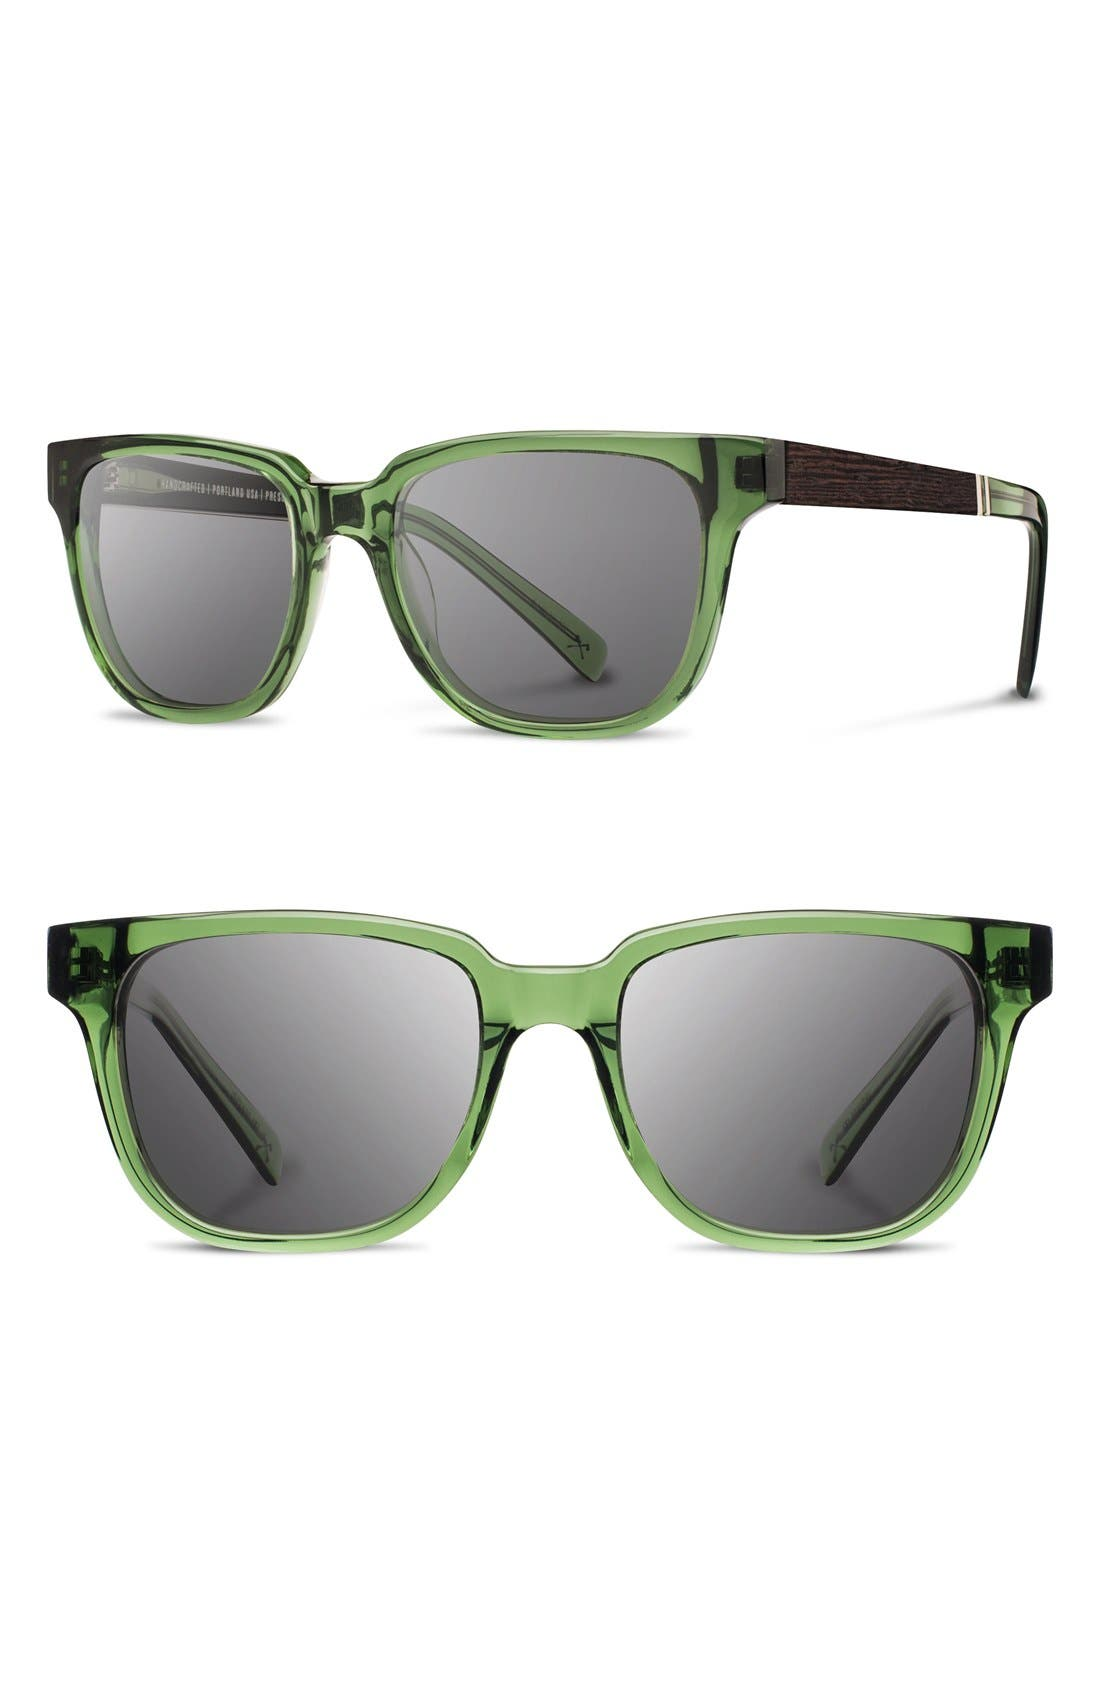 'Prescott' 52mm Acetate & Wood Sunglasses,                             Main thumbnail 1, color,                             Emerald/ Ebony/ Grey